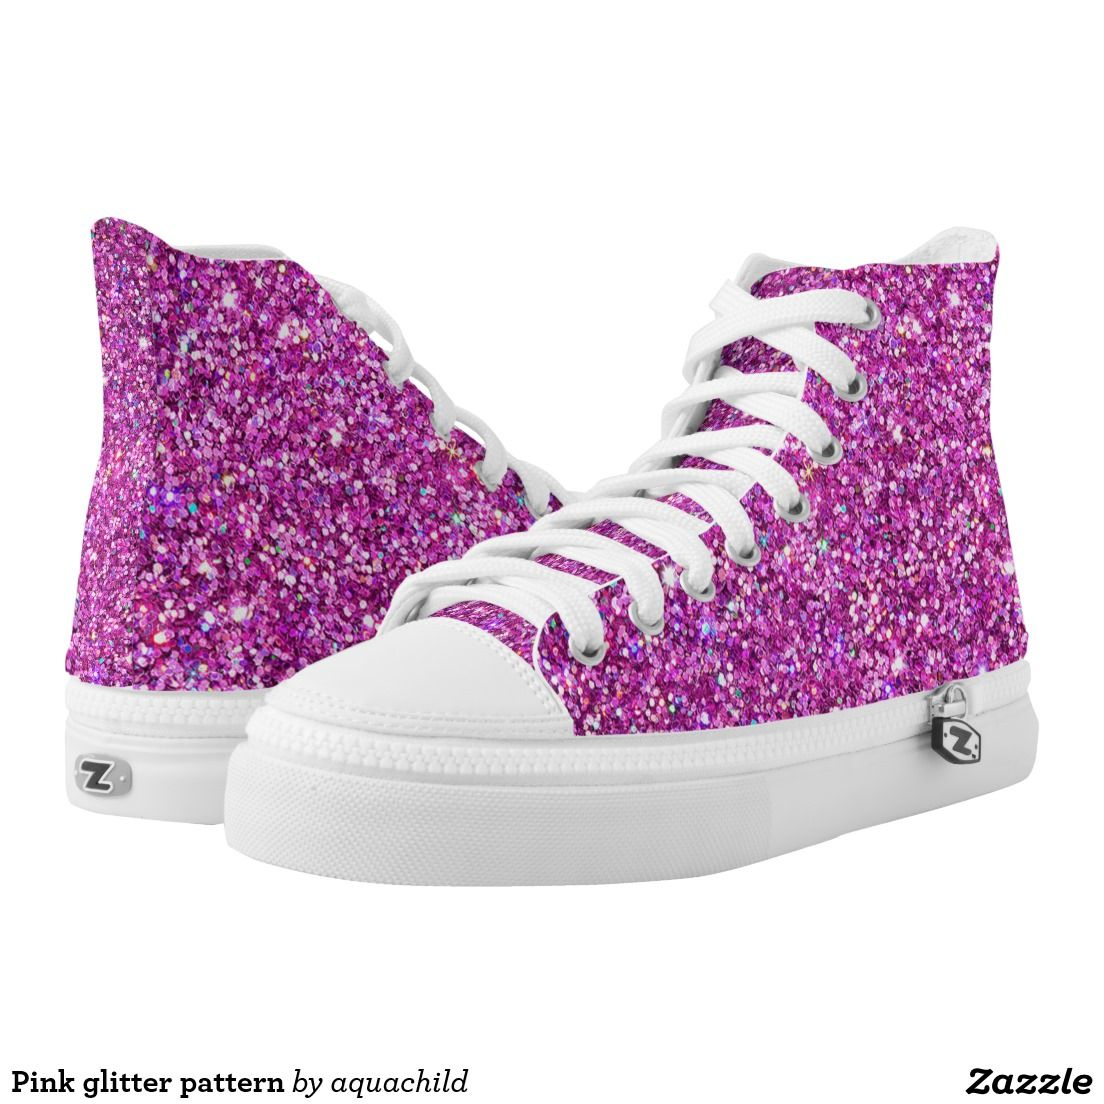 Pink glitter pattern printed shoes